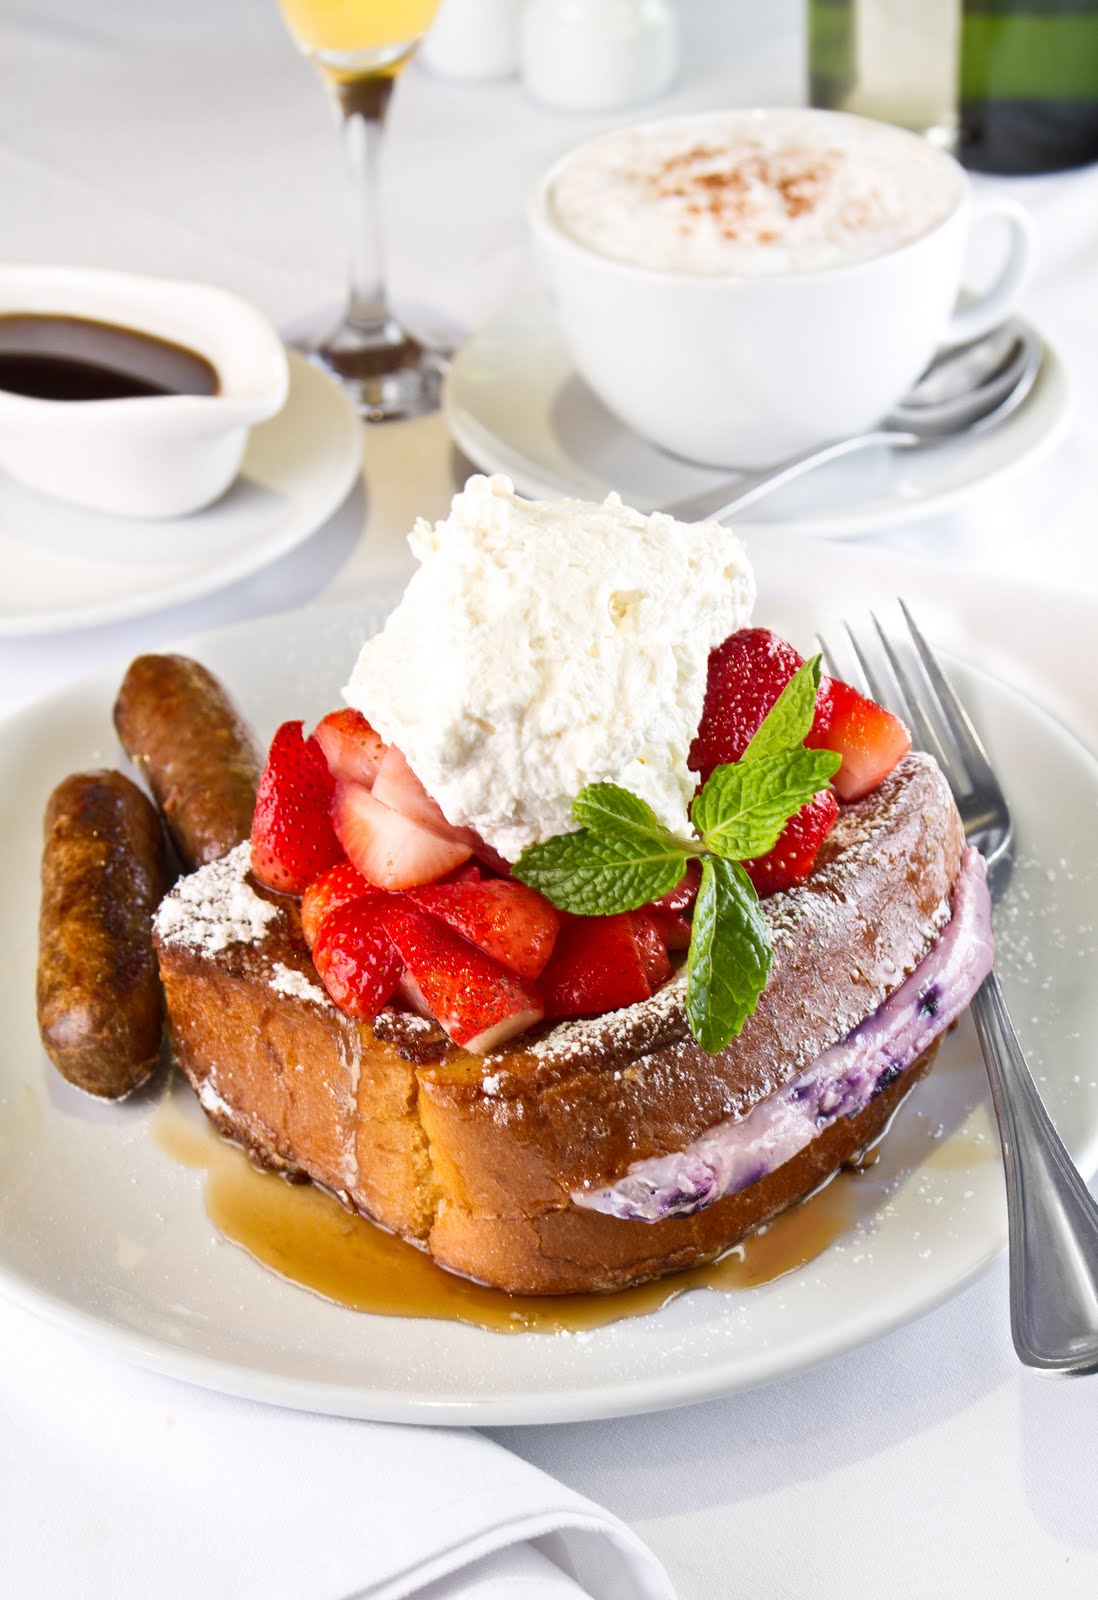 stuffed french toast and sausage